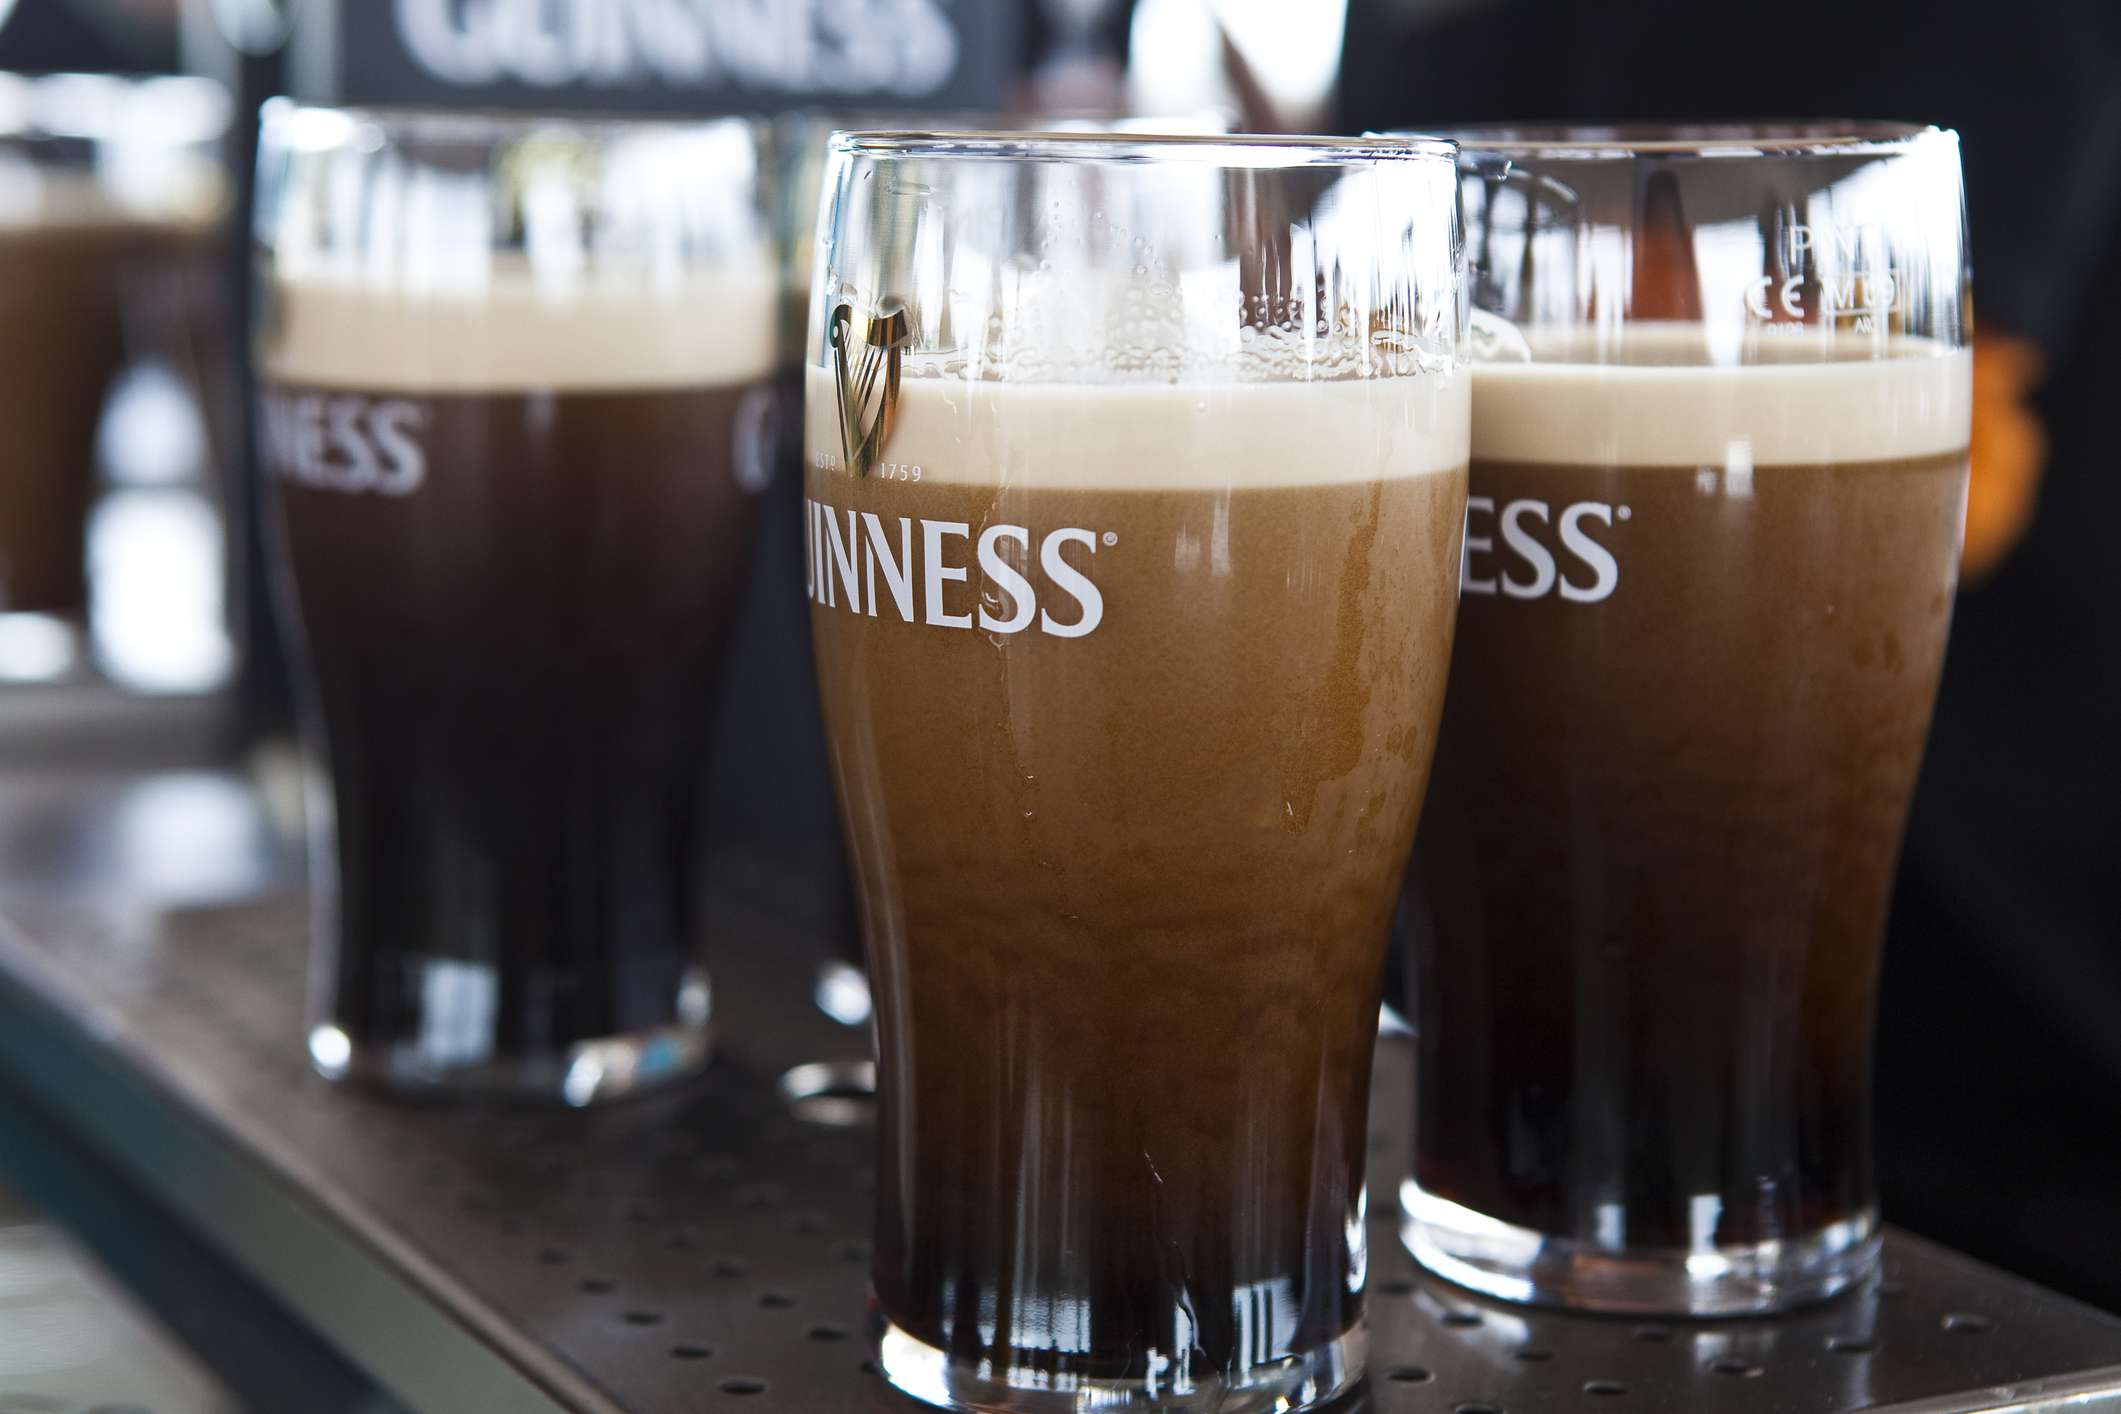 Pints of Guiness beer